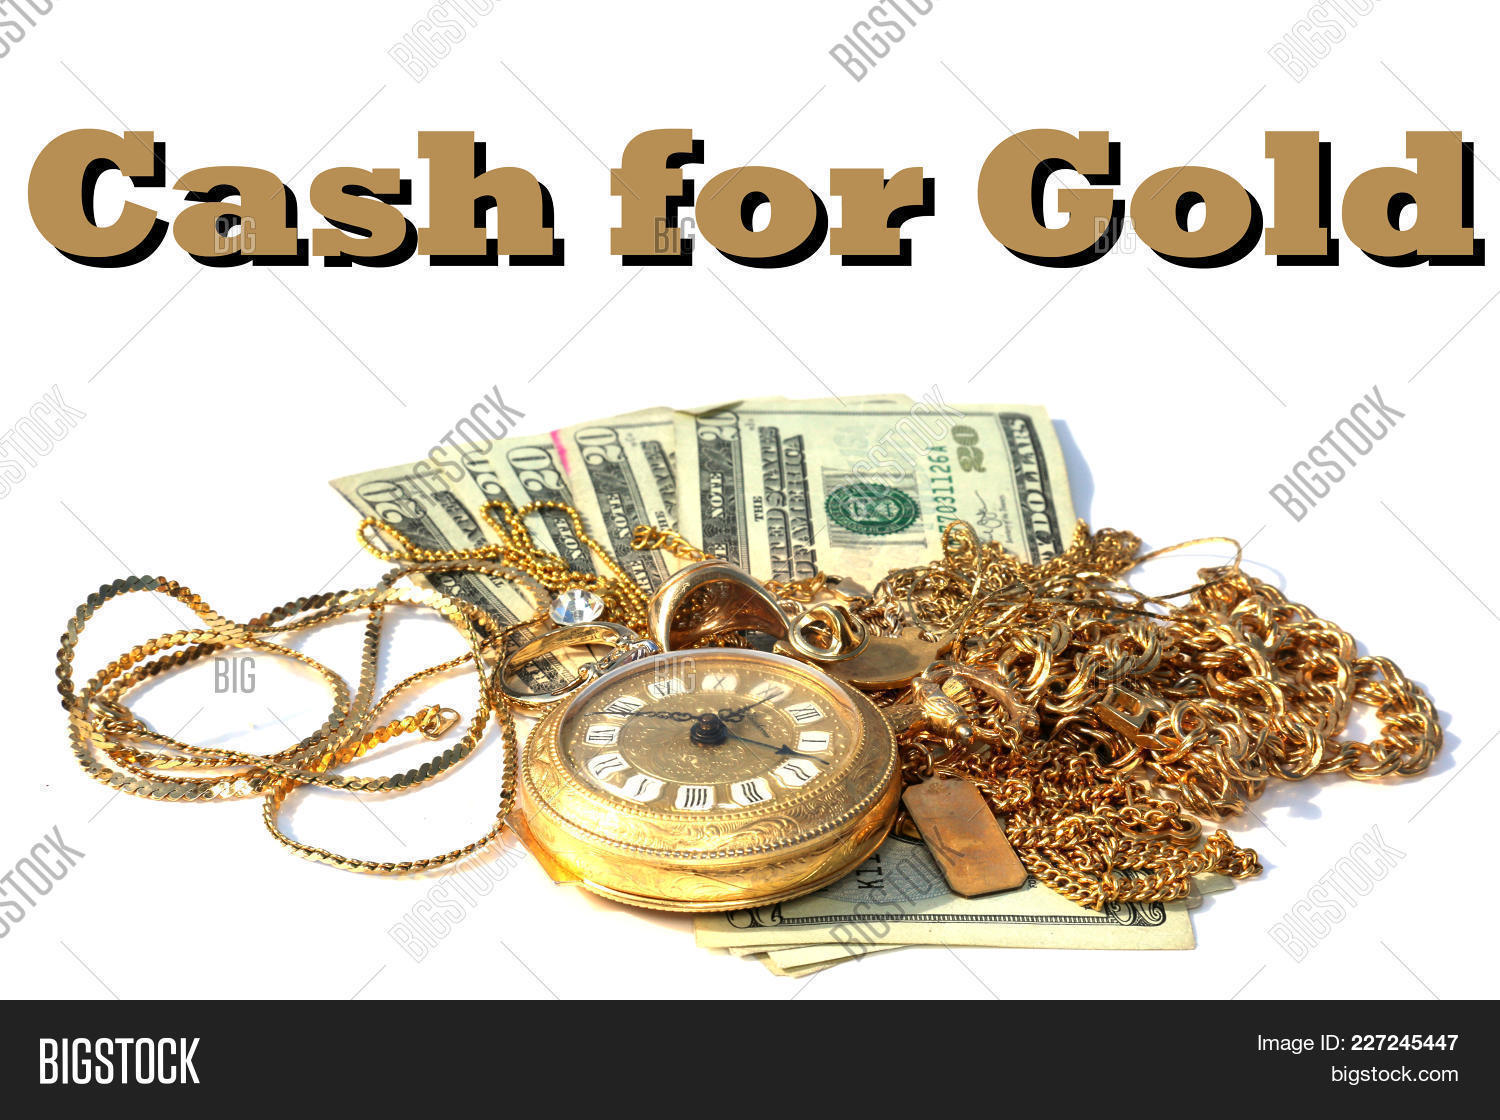 Sell Your Old Broken Image & Photo (Free Trial) | Bigstock